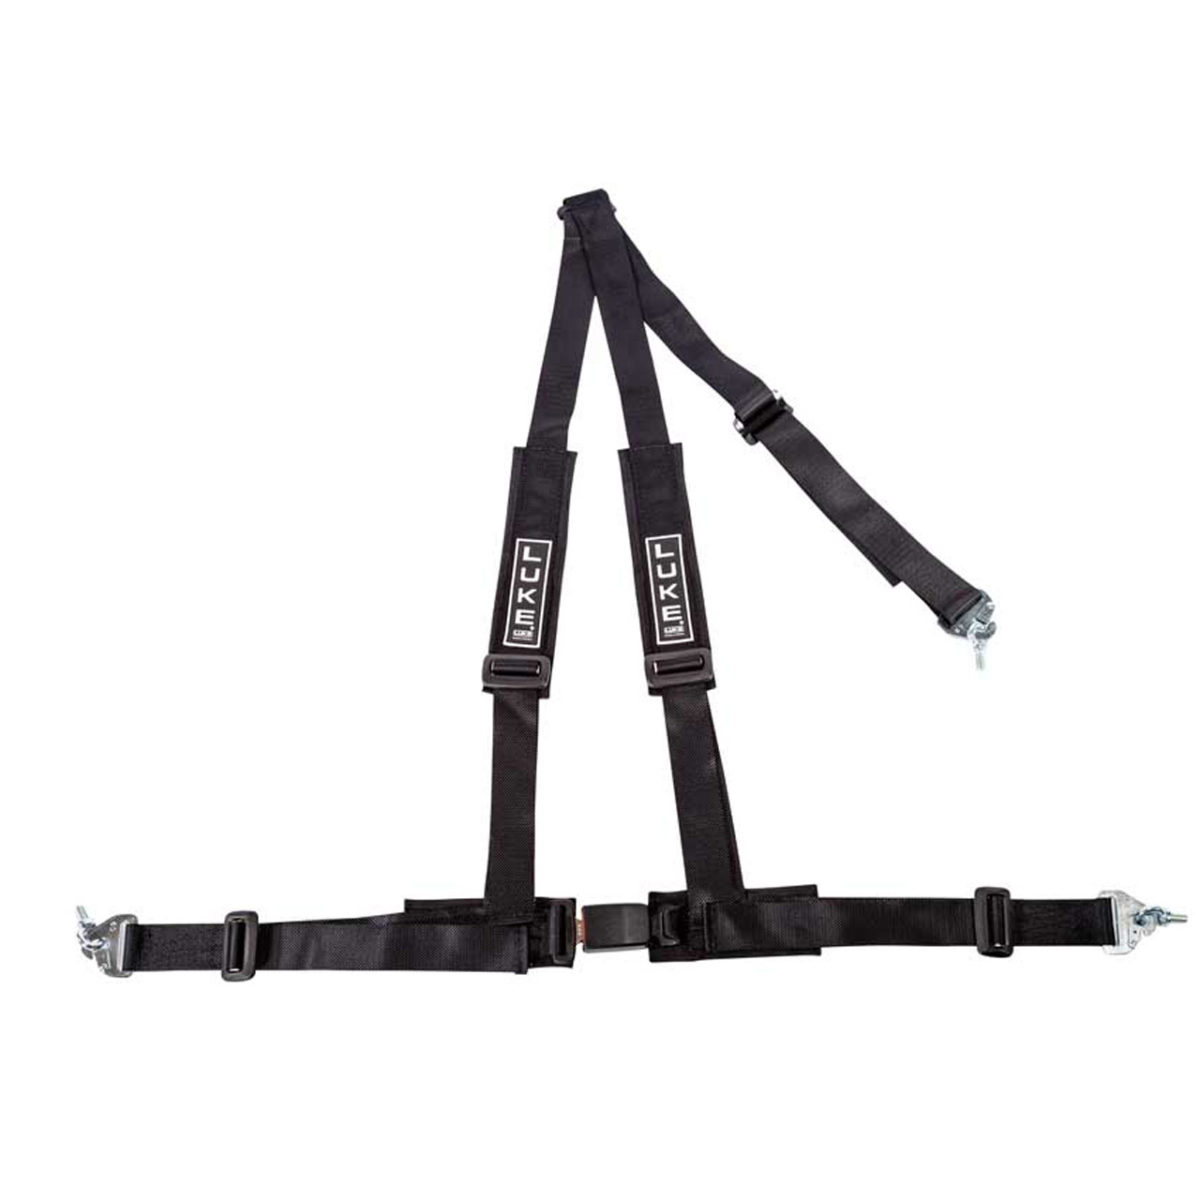 LUKE 3 Point Harness in Black - Racing Harnesses